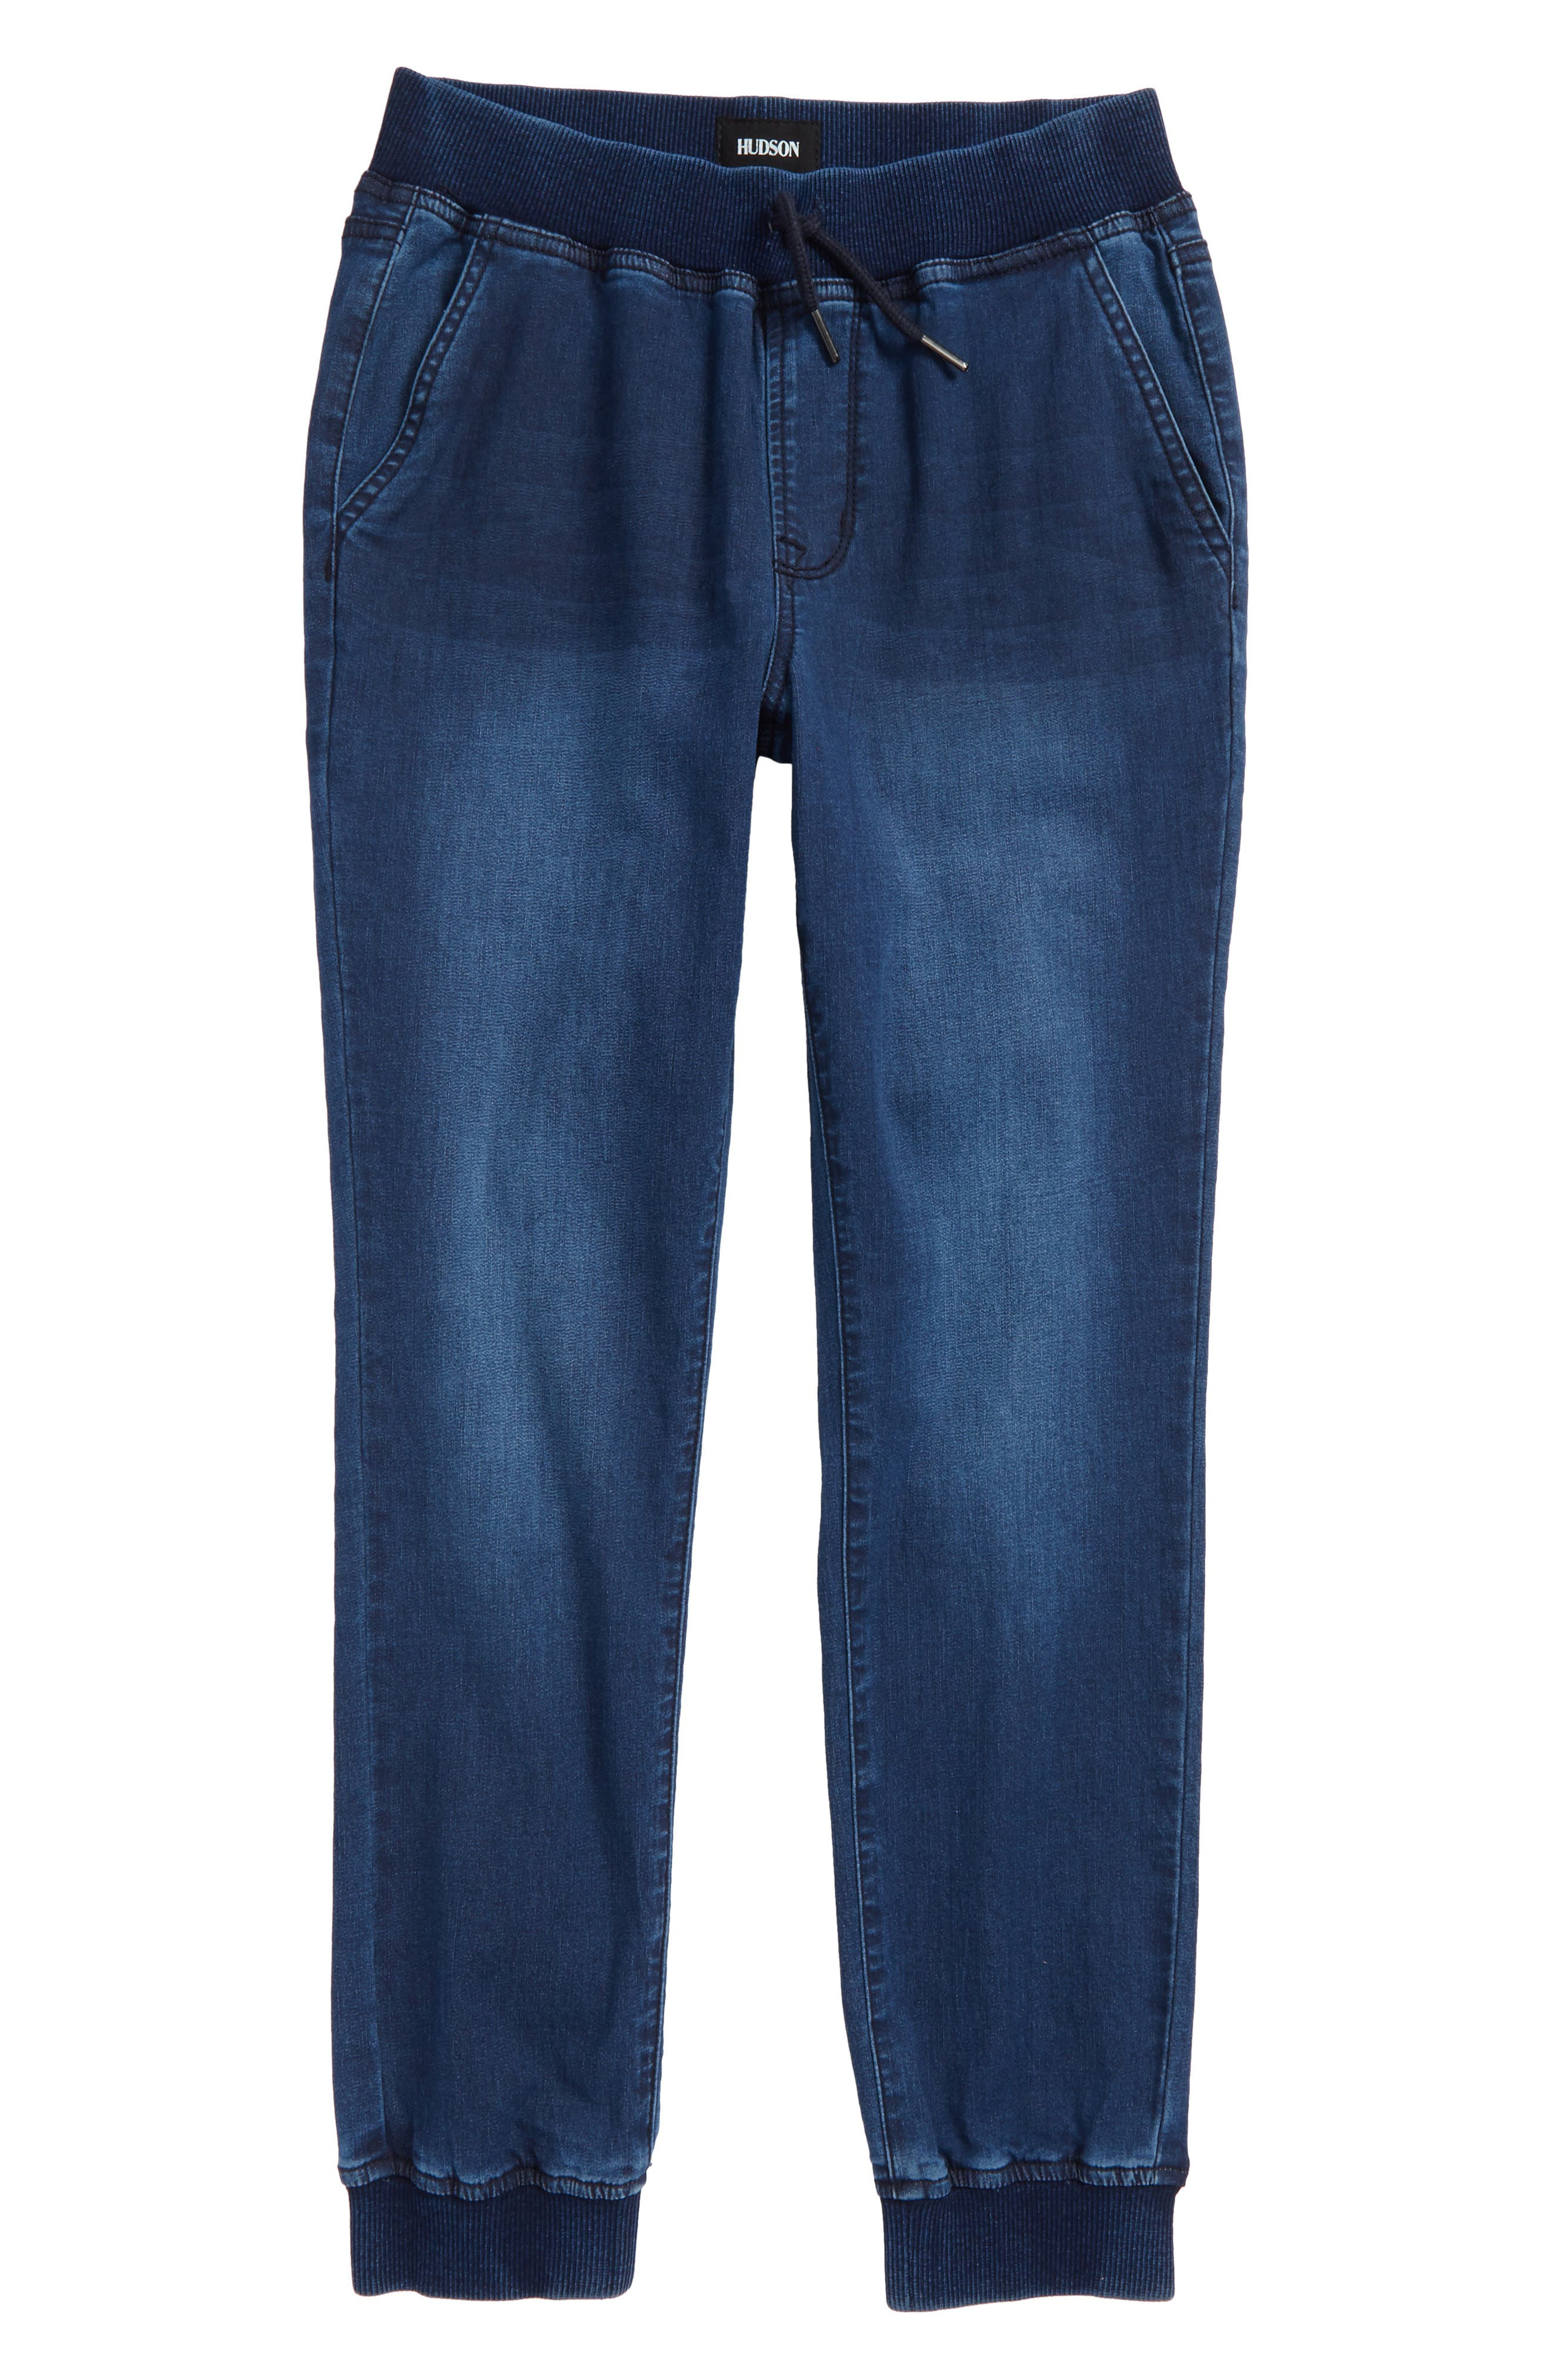 Nate Denim Jogger Pants,                         Main,                         color, 470